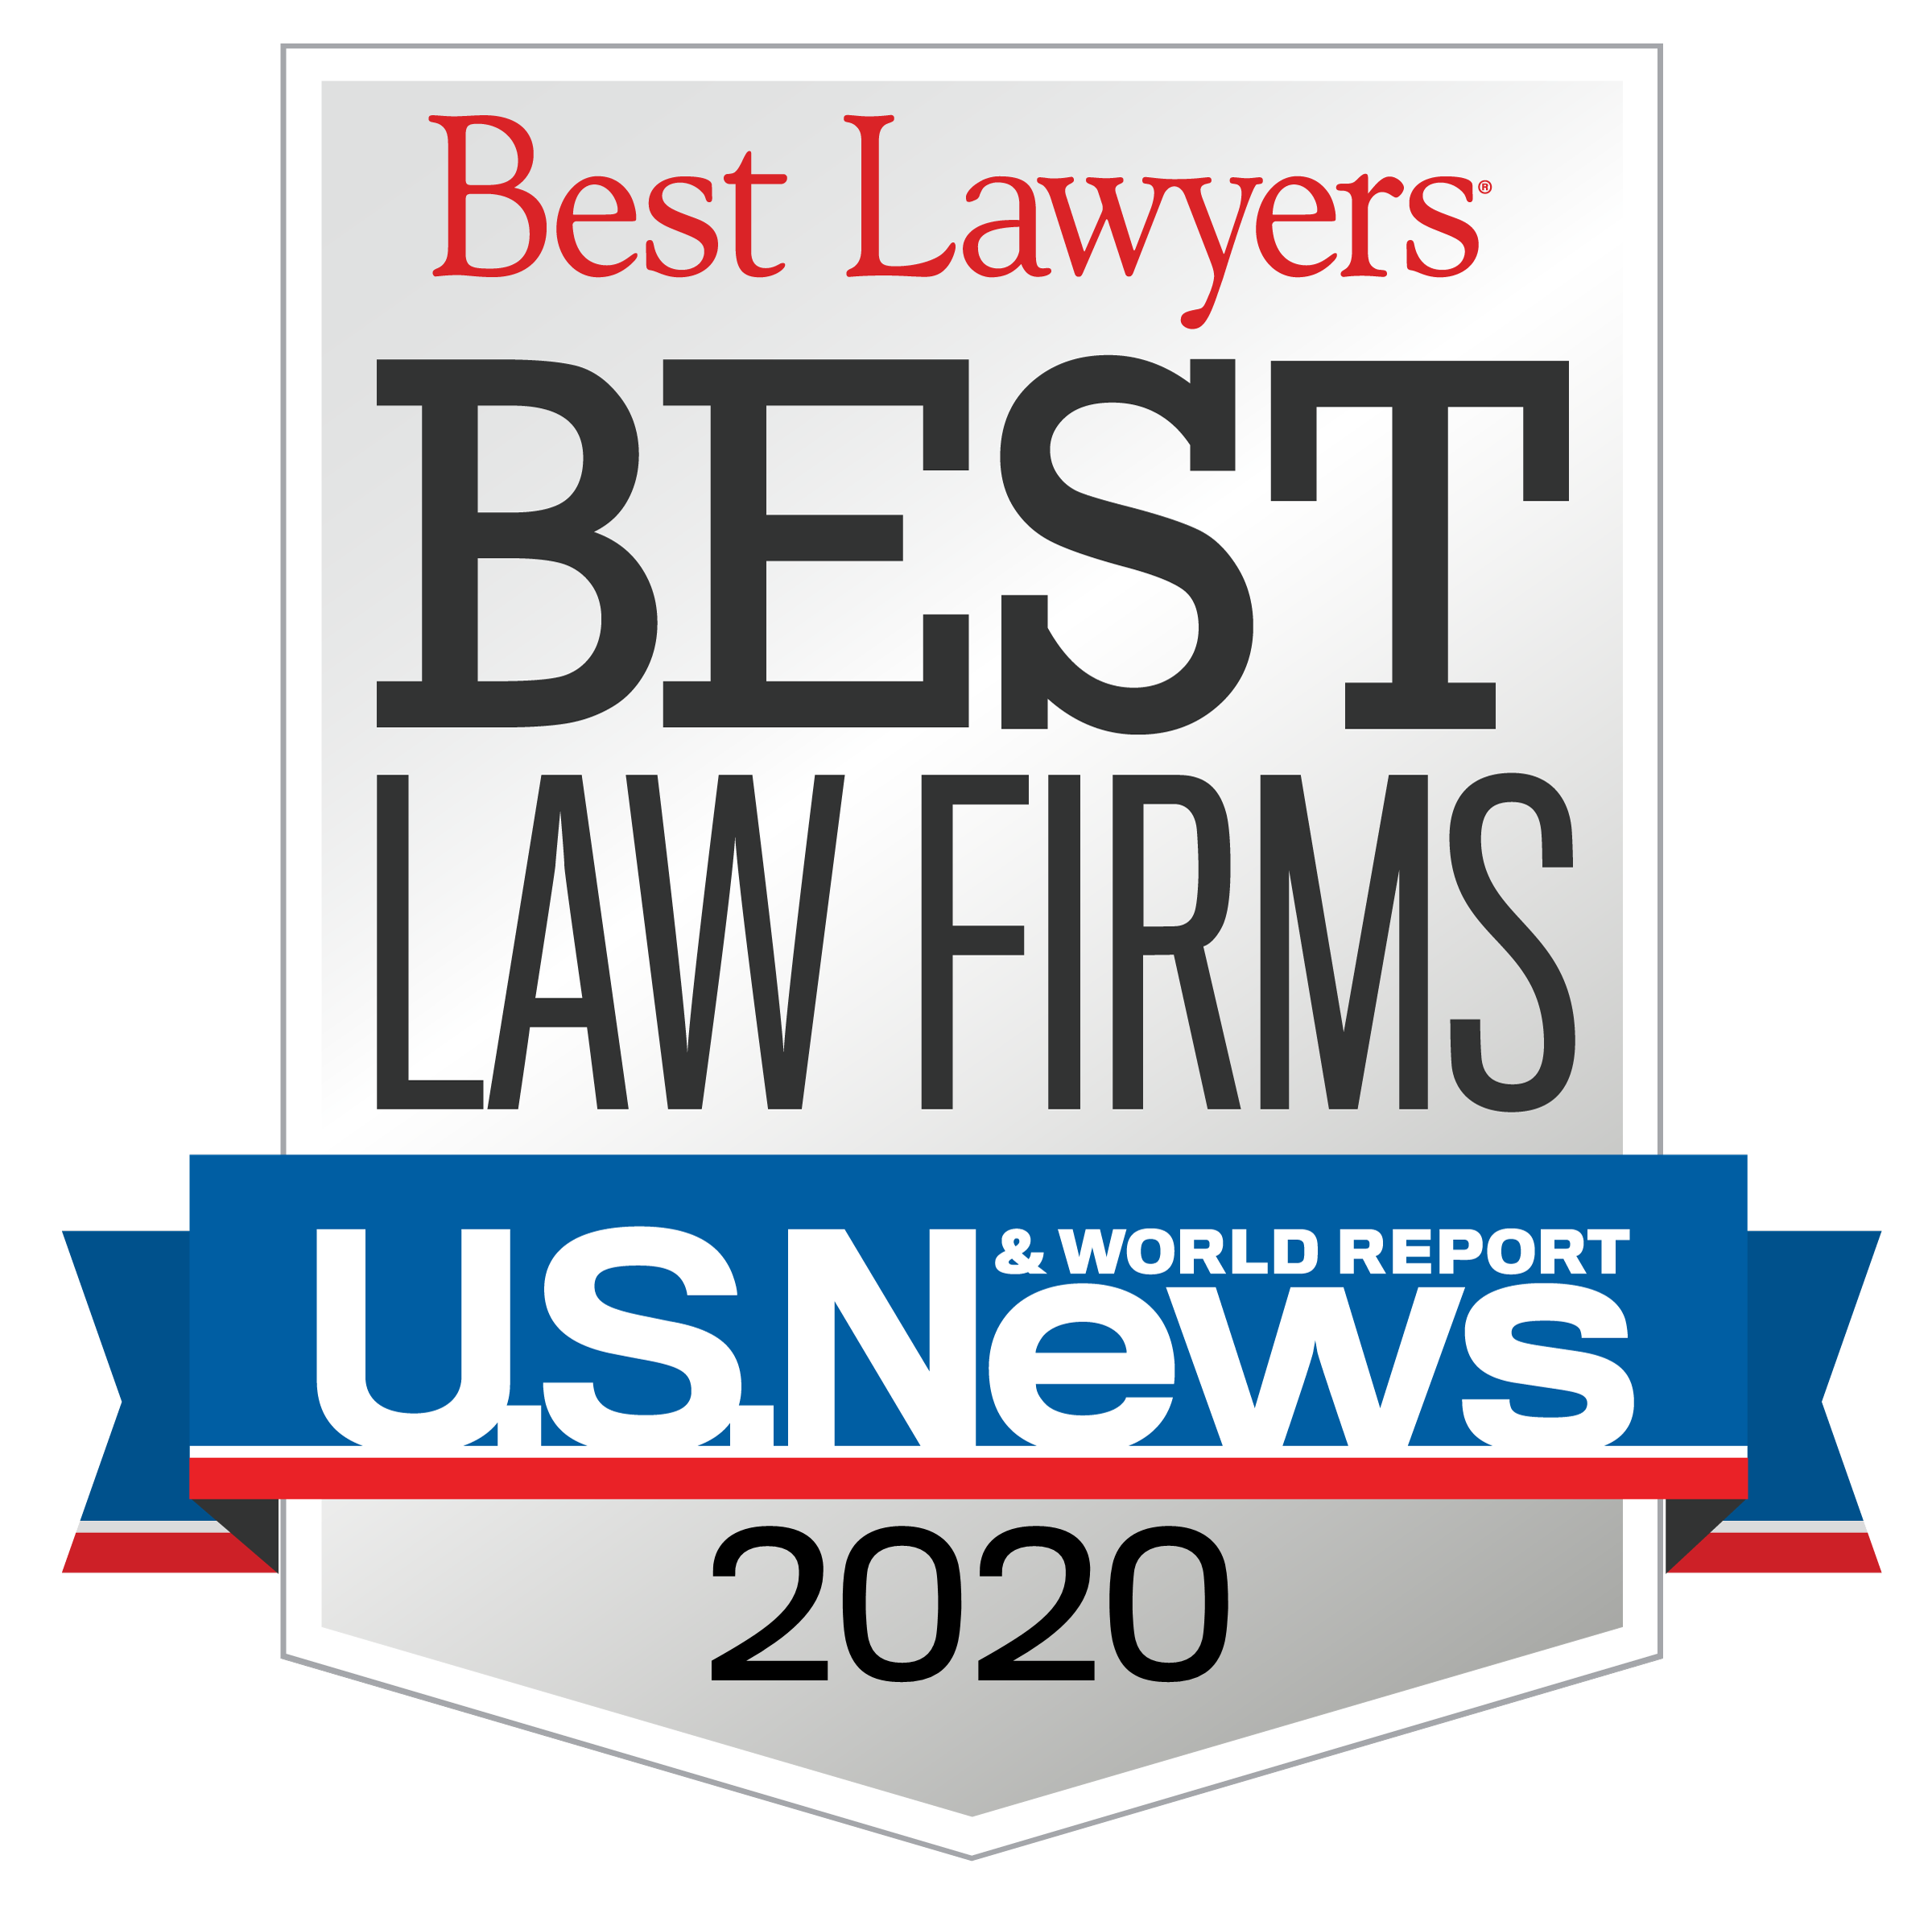 TNW was awarded Best Law Firms by Best Lawyers 2020 in the U.S. News & World Report / Best Lawyers®.